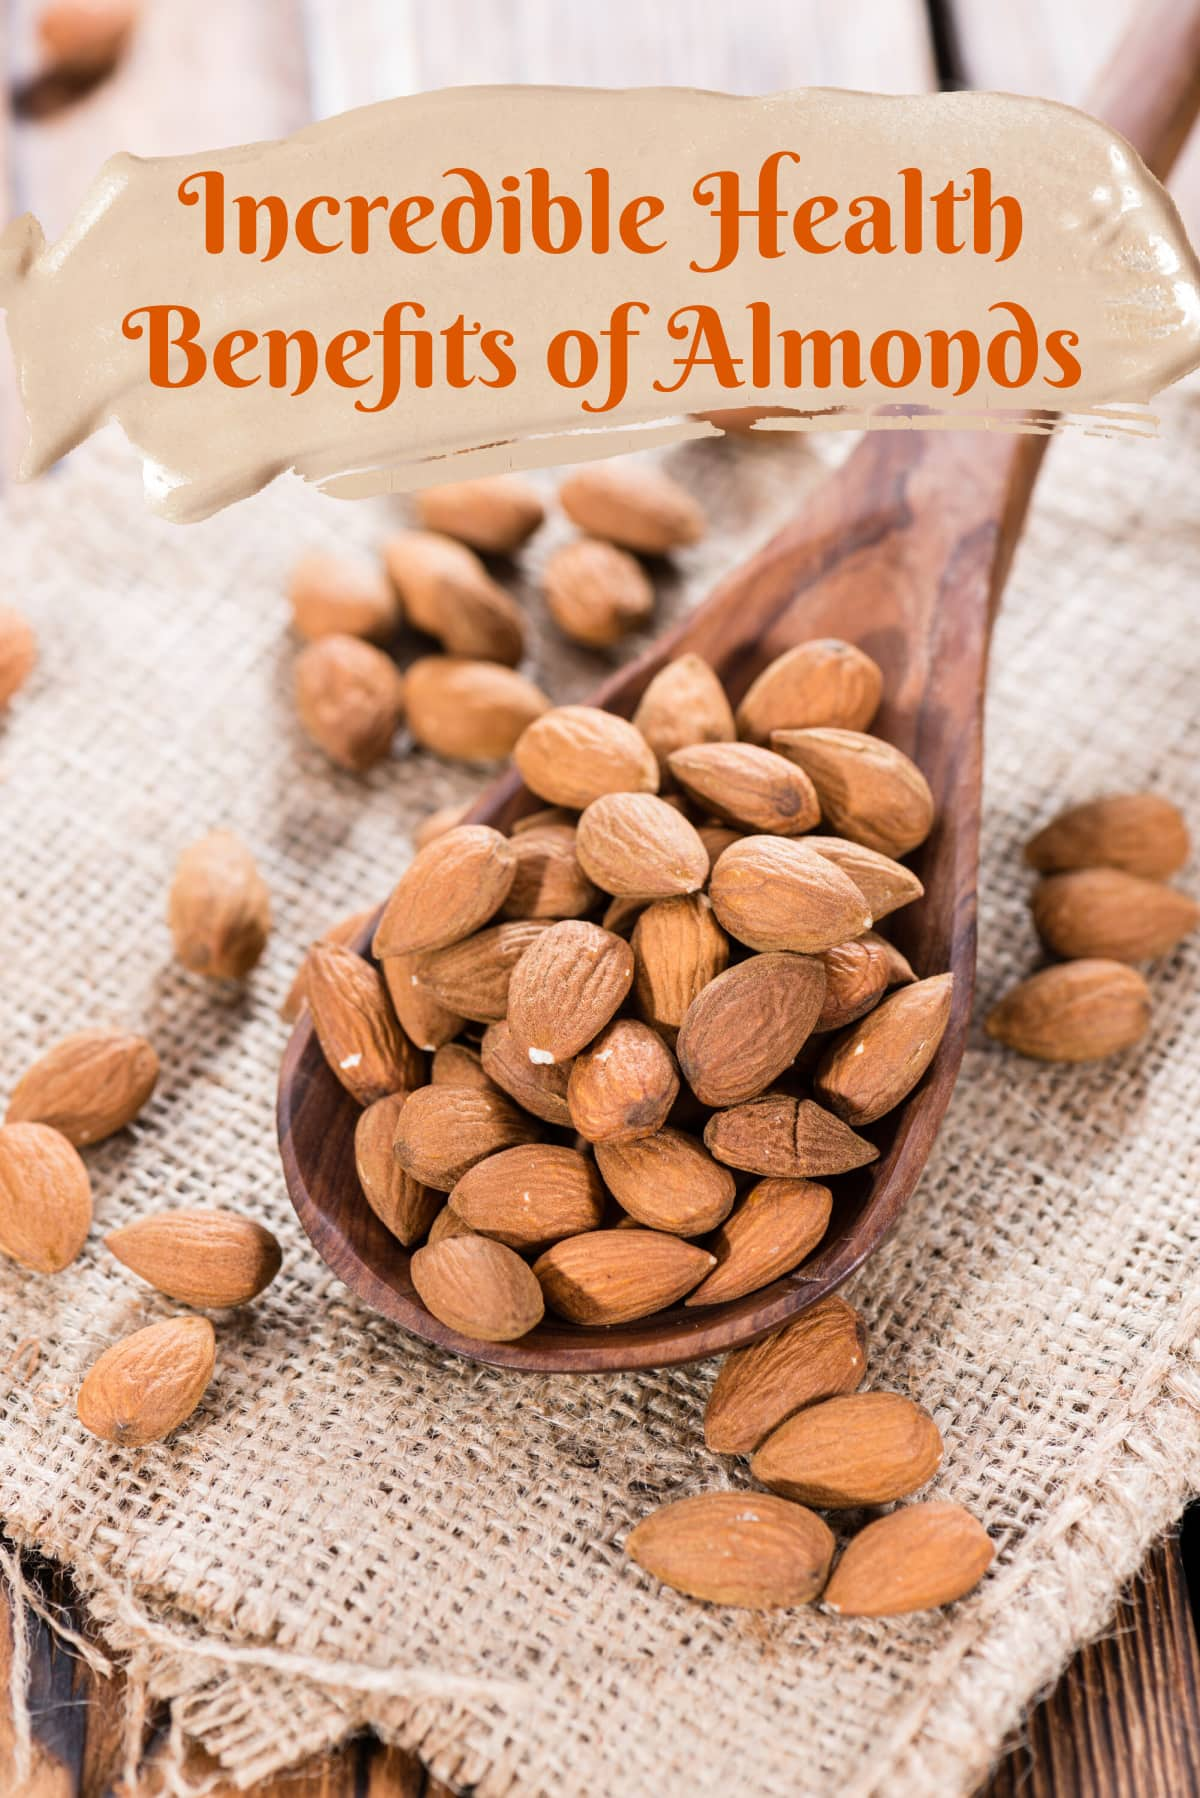 Incredible Health Benefits of Almonds